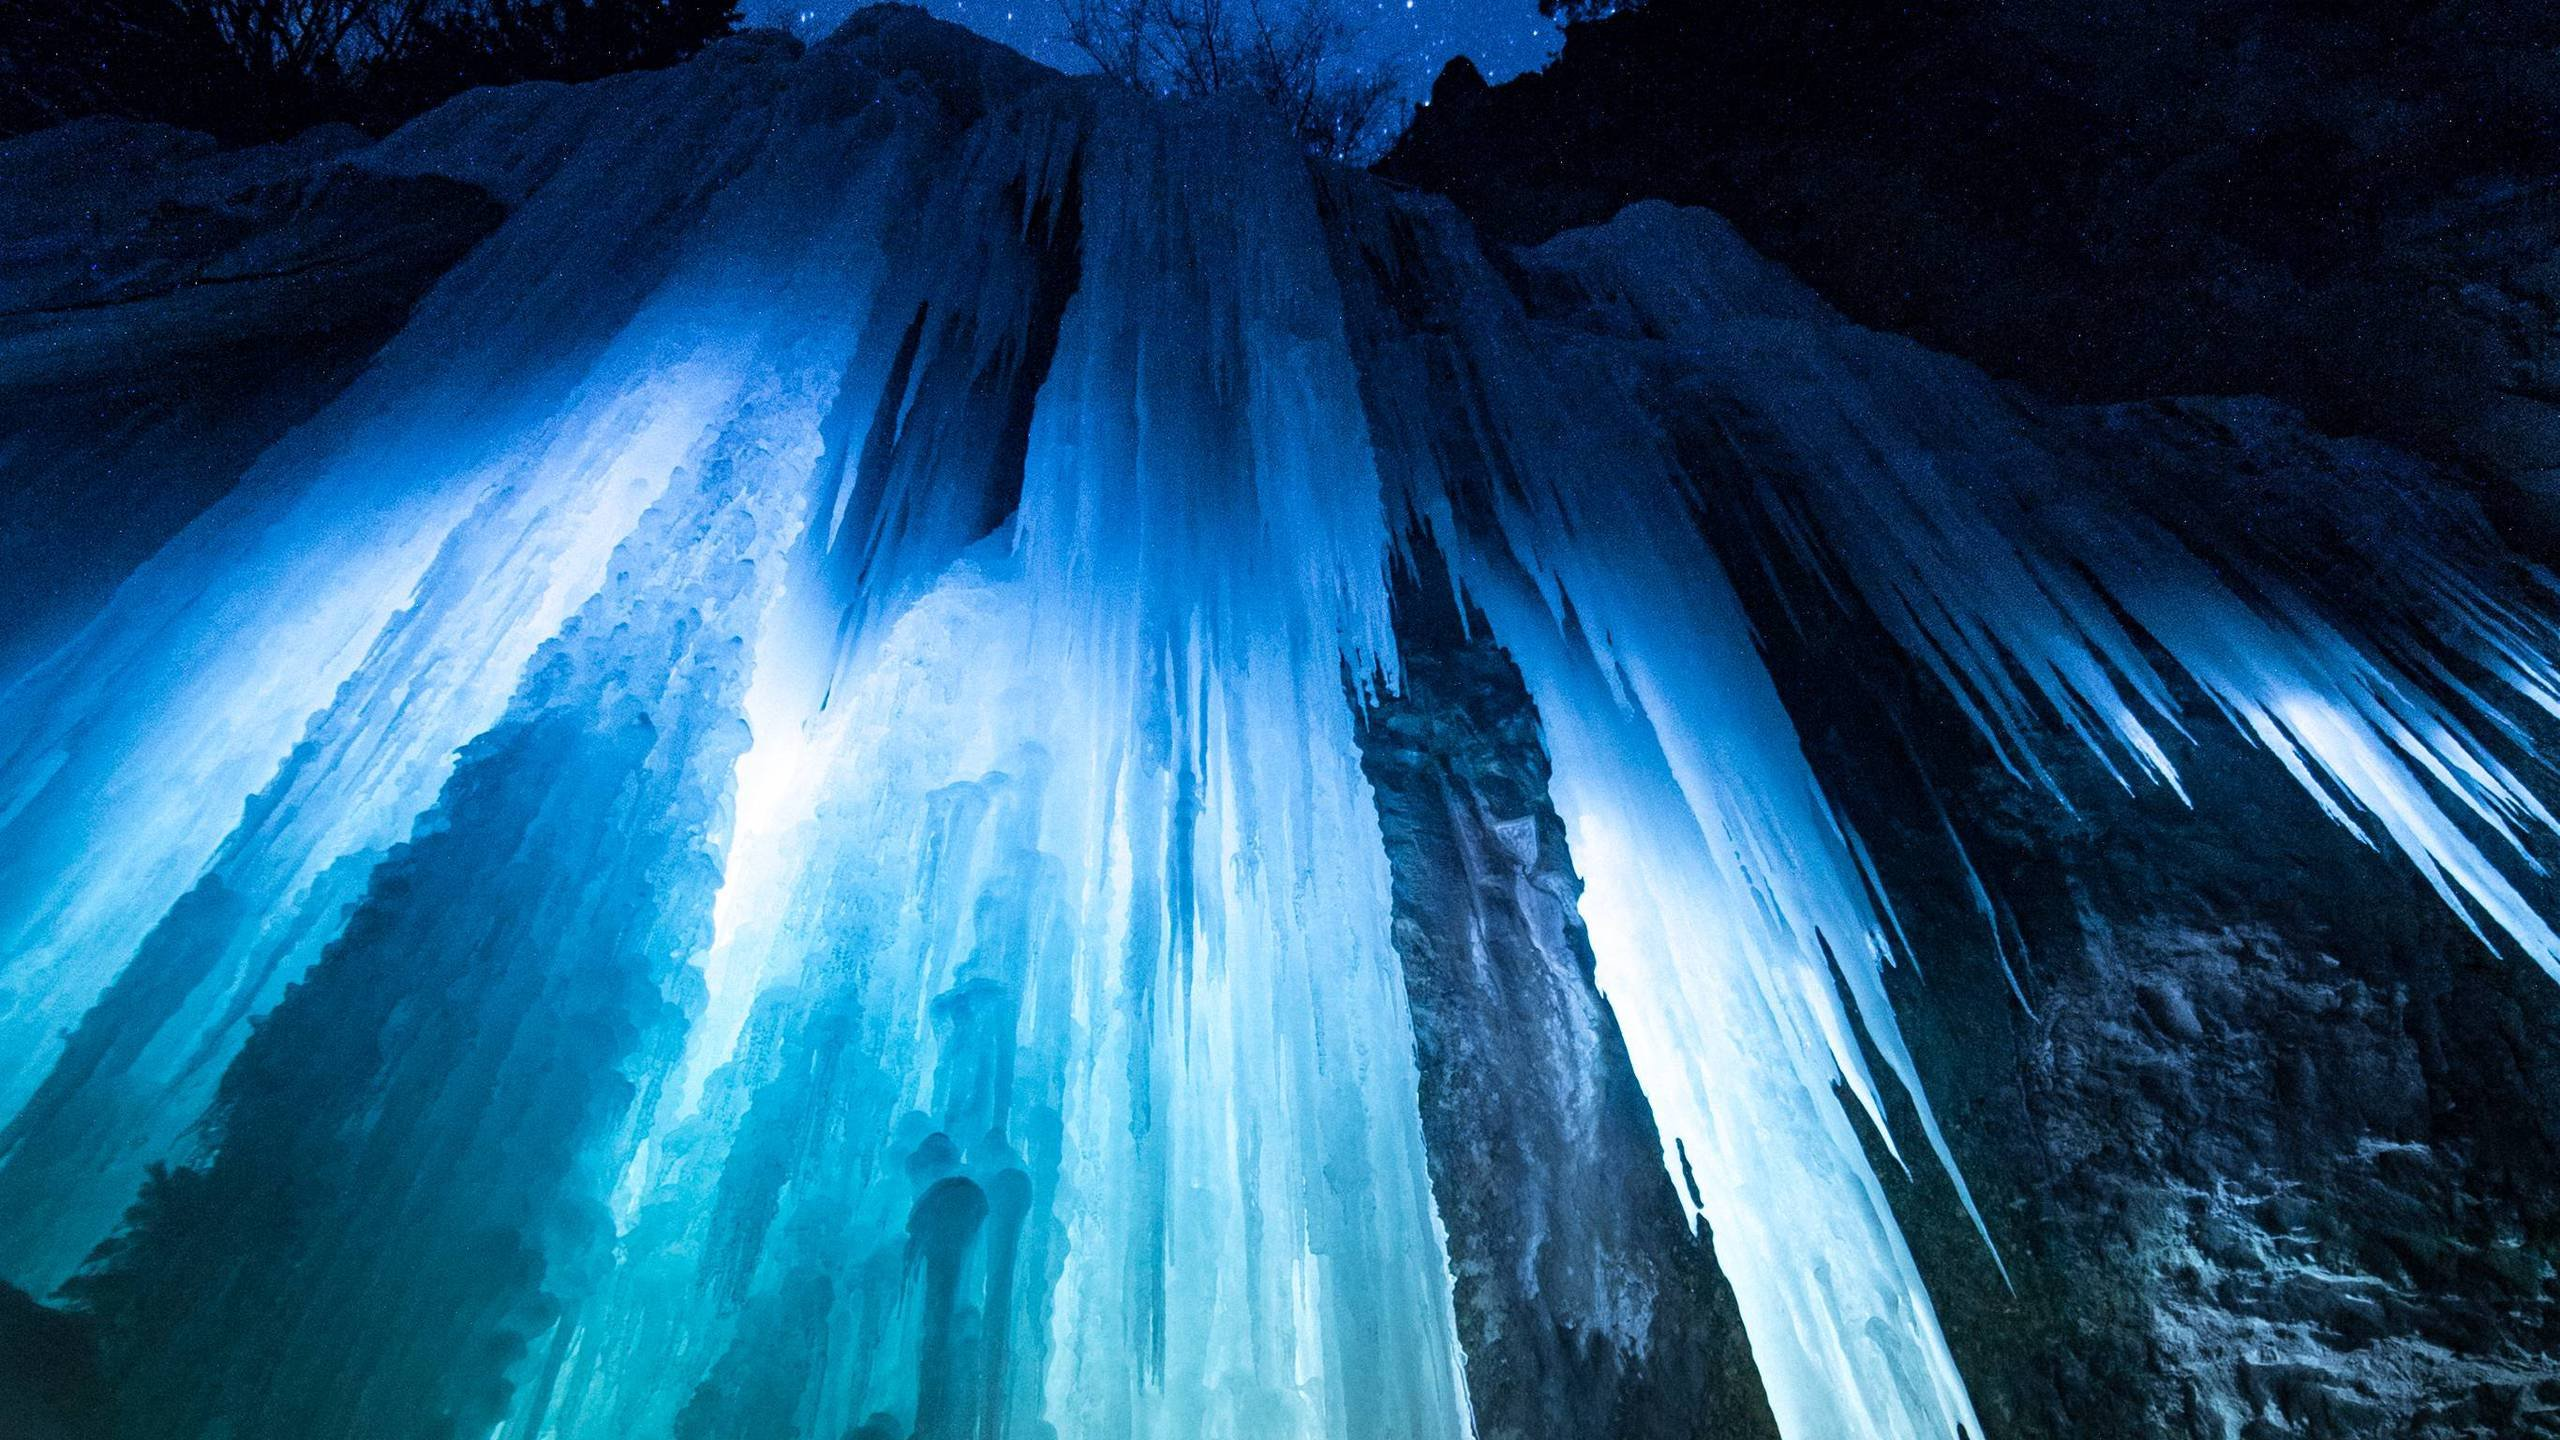 The Ice Caves of Rifle Mountain Park Colorado wallpaper